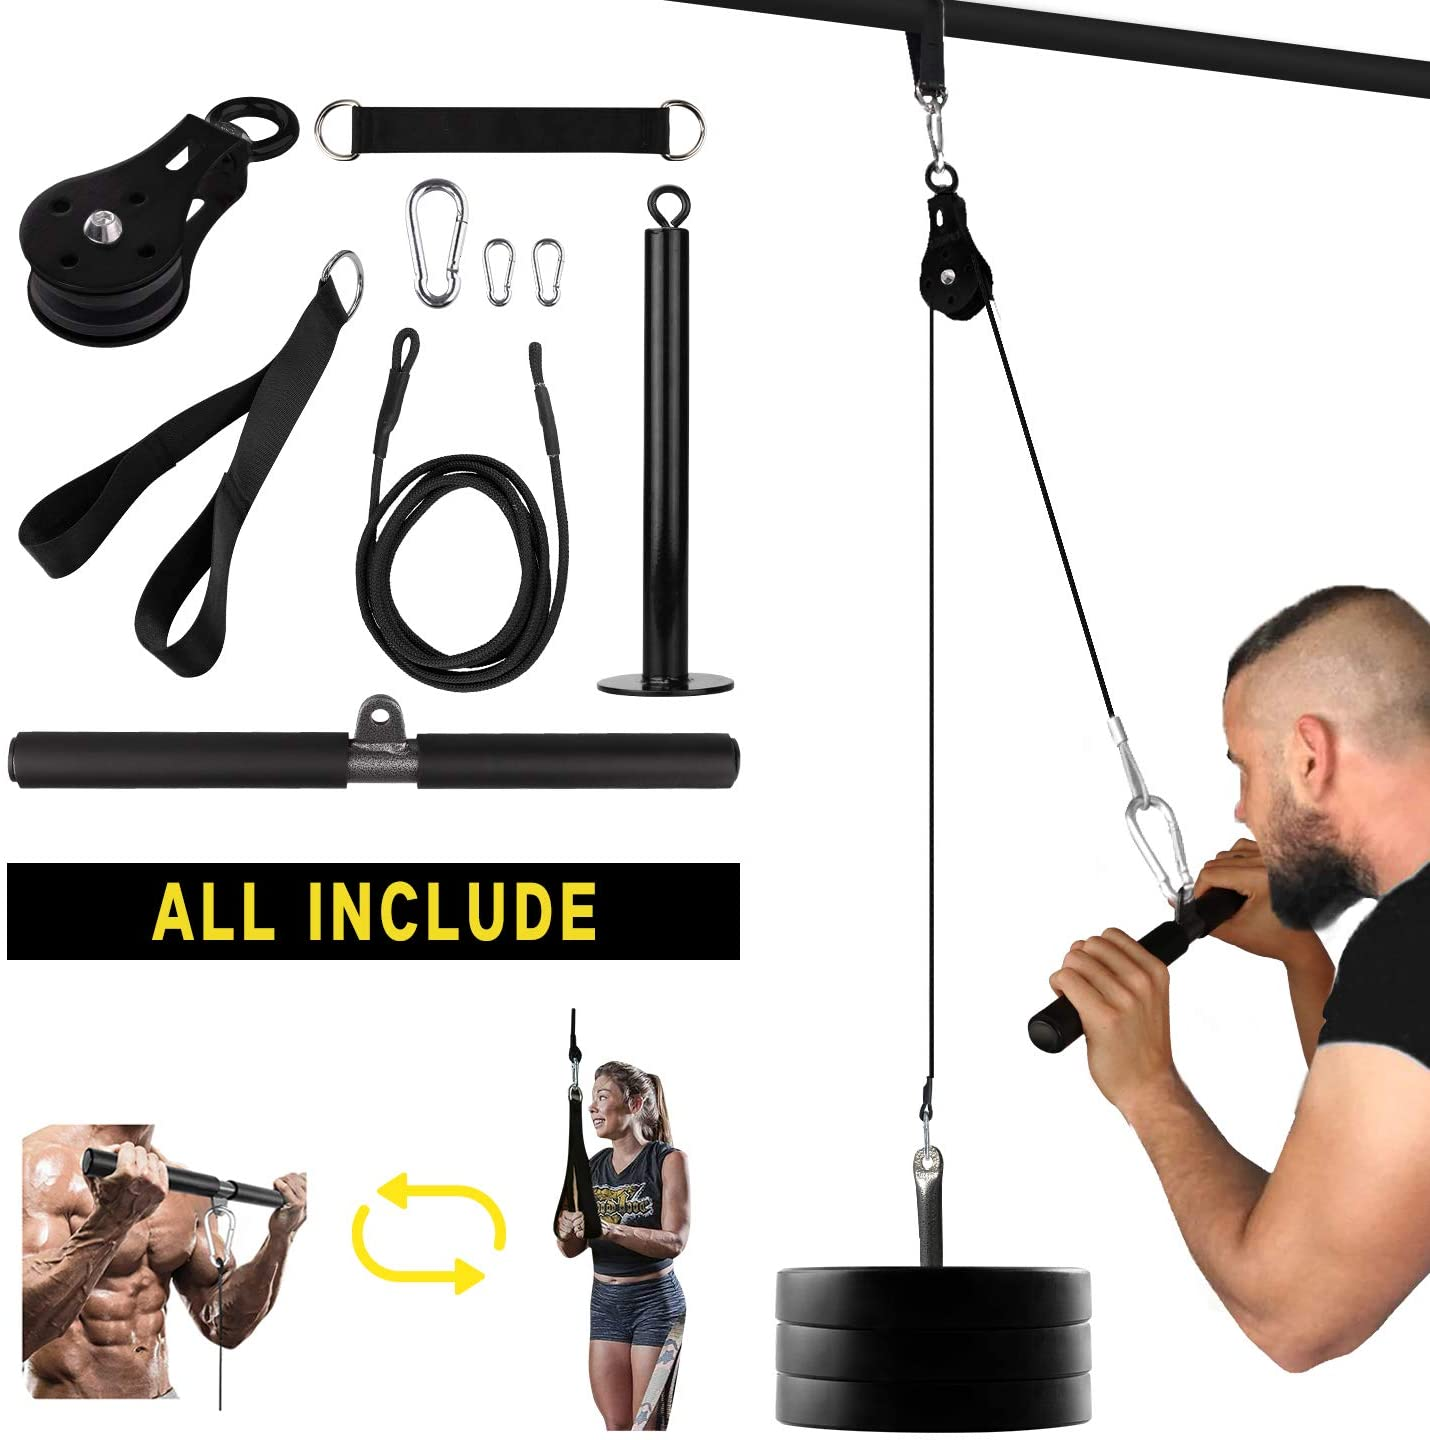 ARCHON Fitness Single Pulley Cable Station is cheaply made meant for short-term use